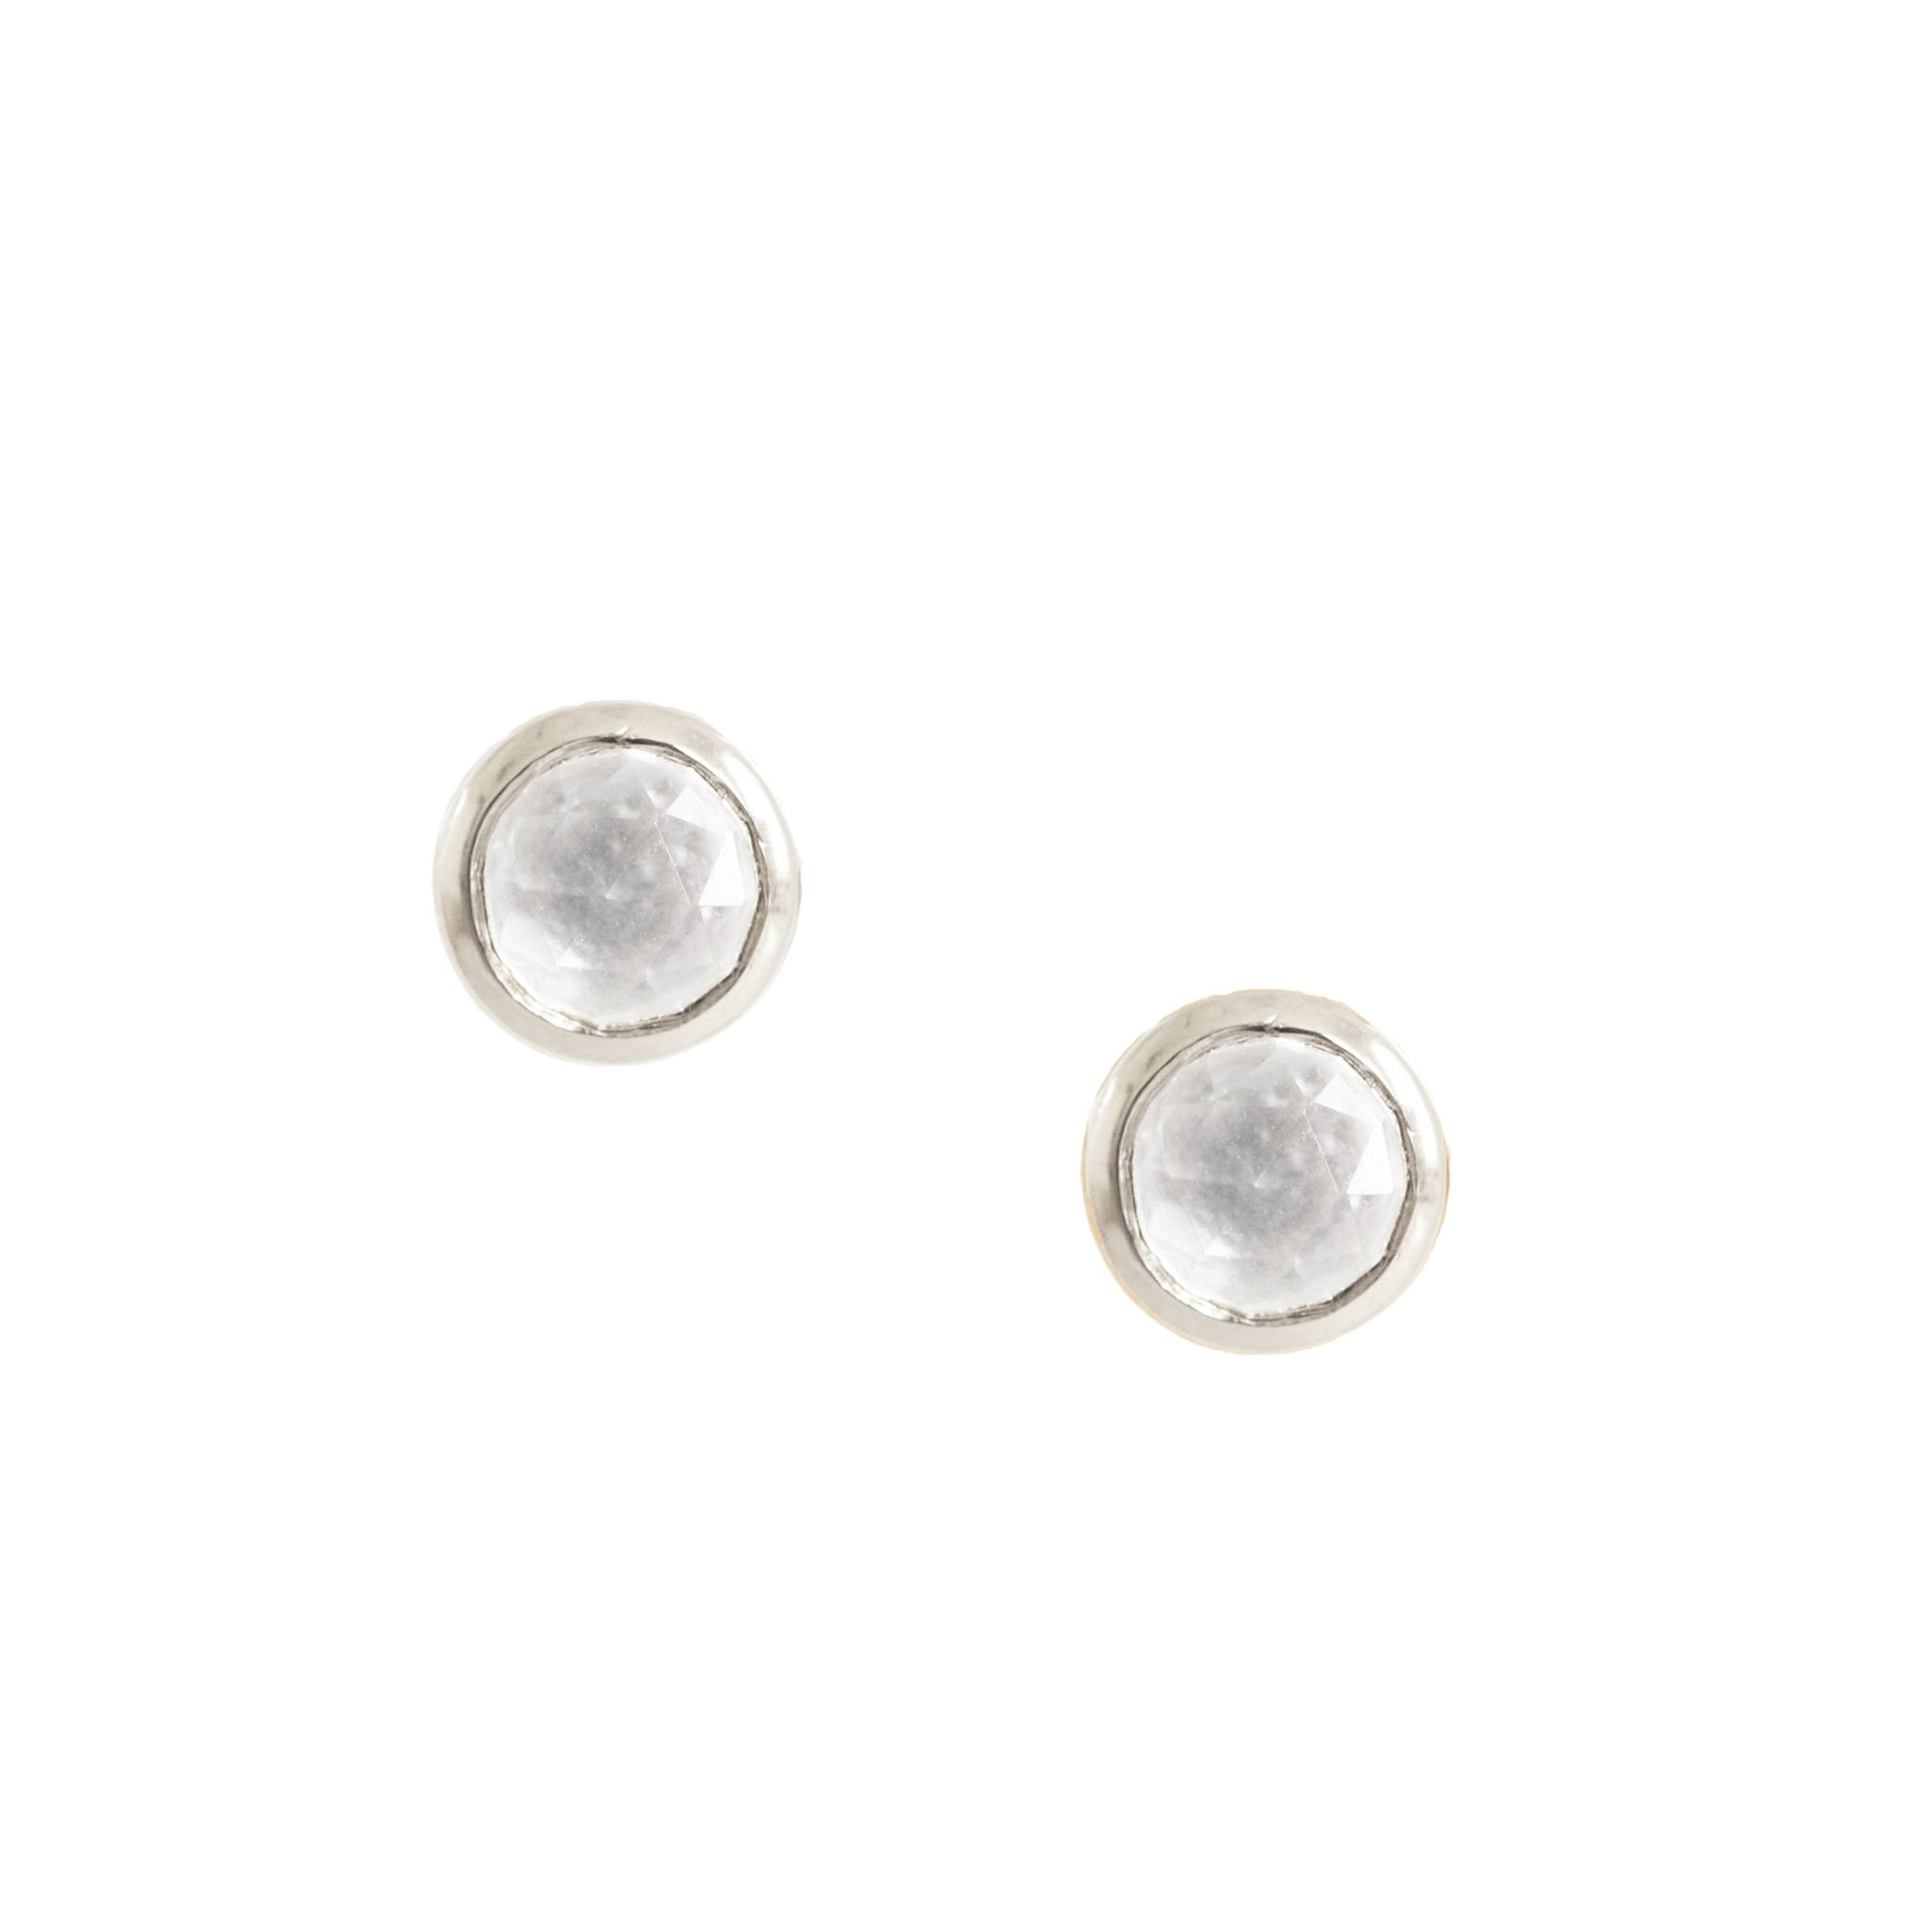 DAINTY LEGACY STUDS - WHITE TOPAZ & SILVER - SO PRETTY CARA COTTER